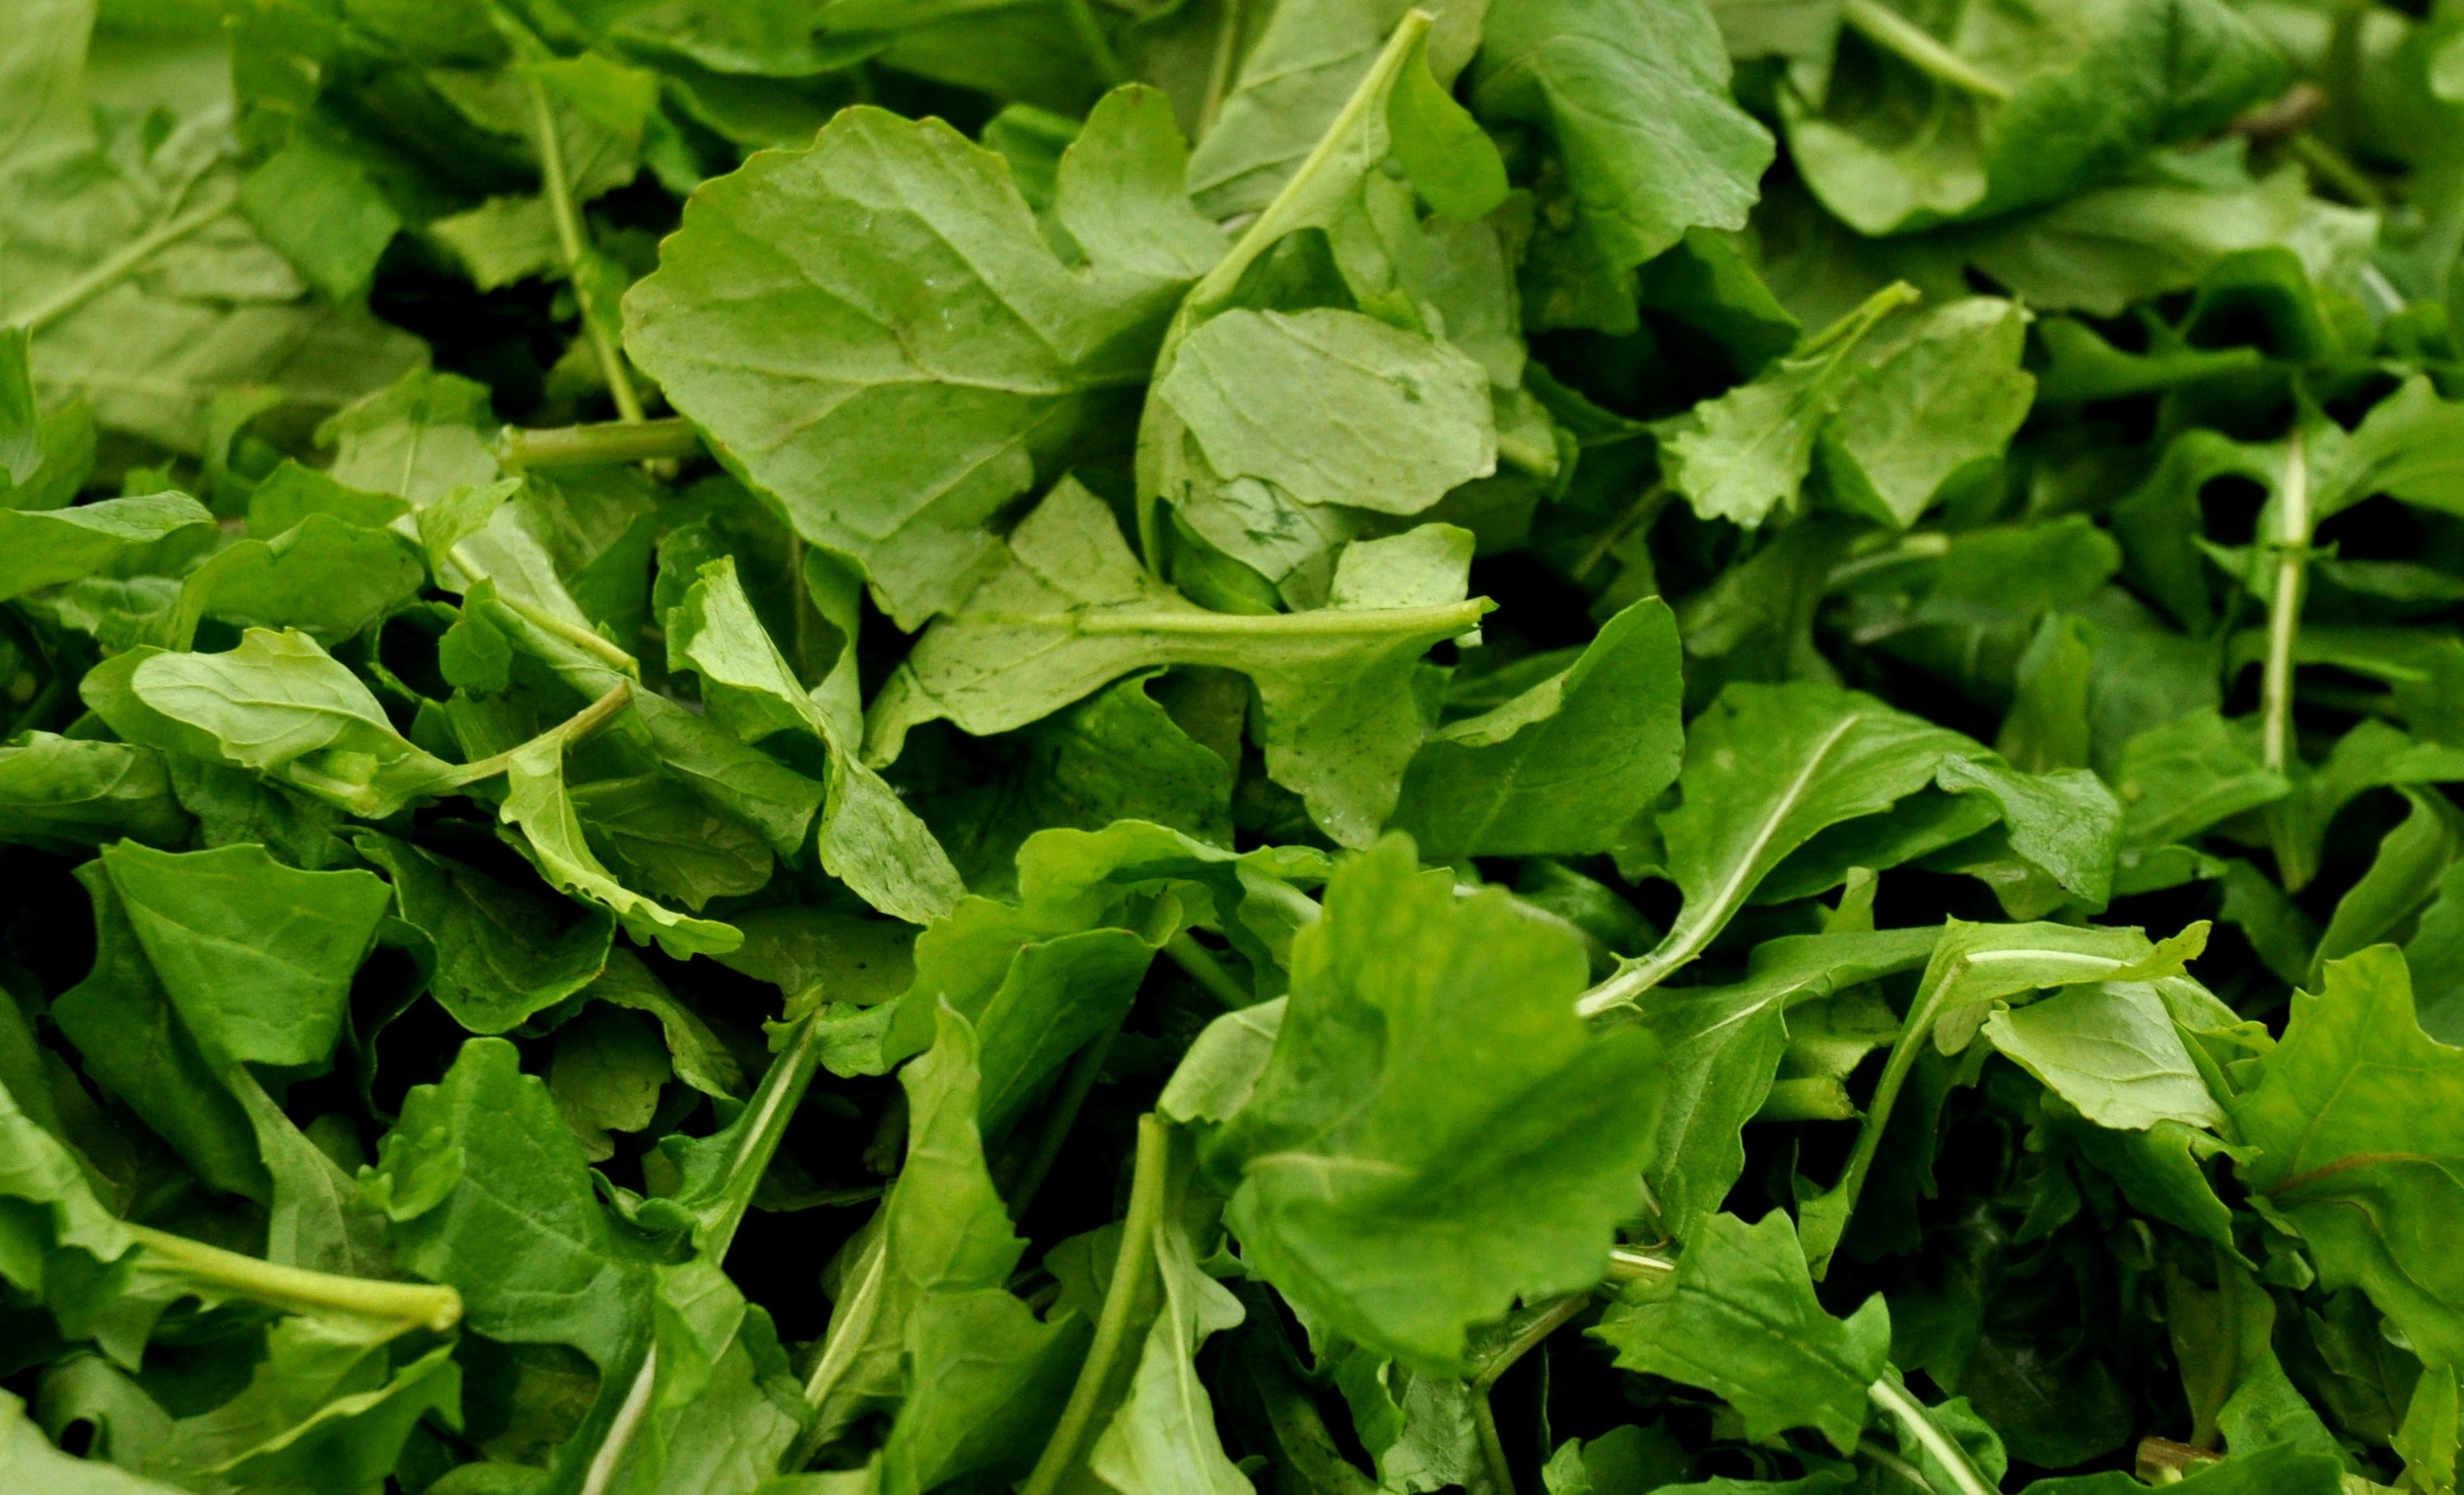 Arugula from Colinwood Farm. Photo copyright 2014 by Zachary D. Lyons.